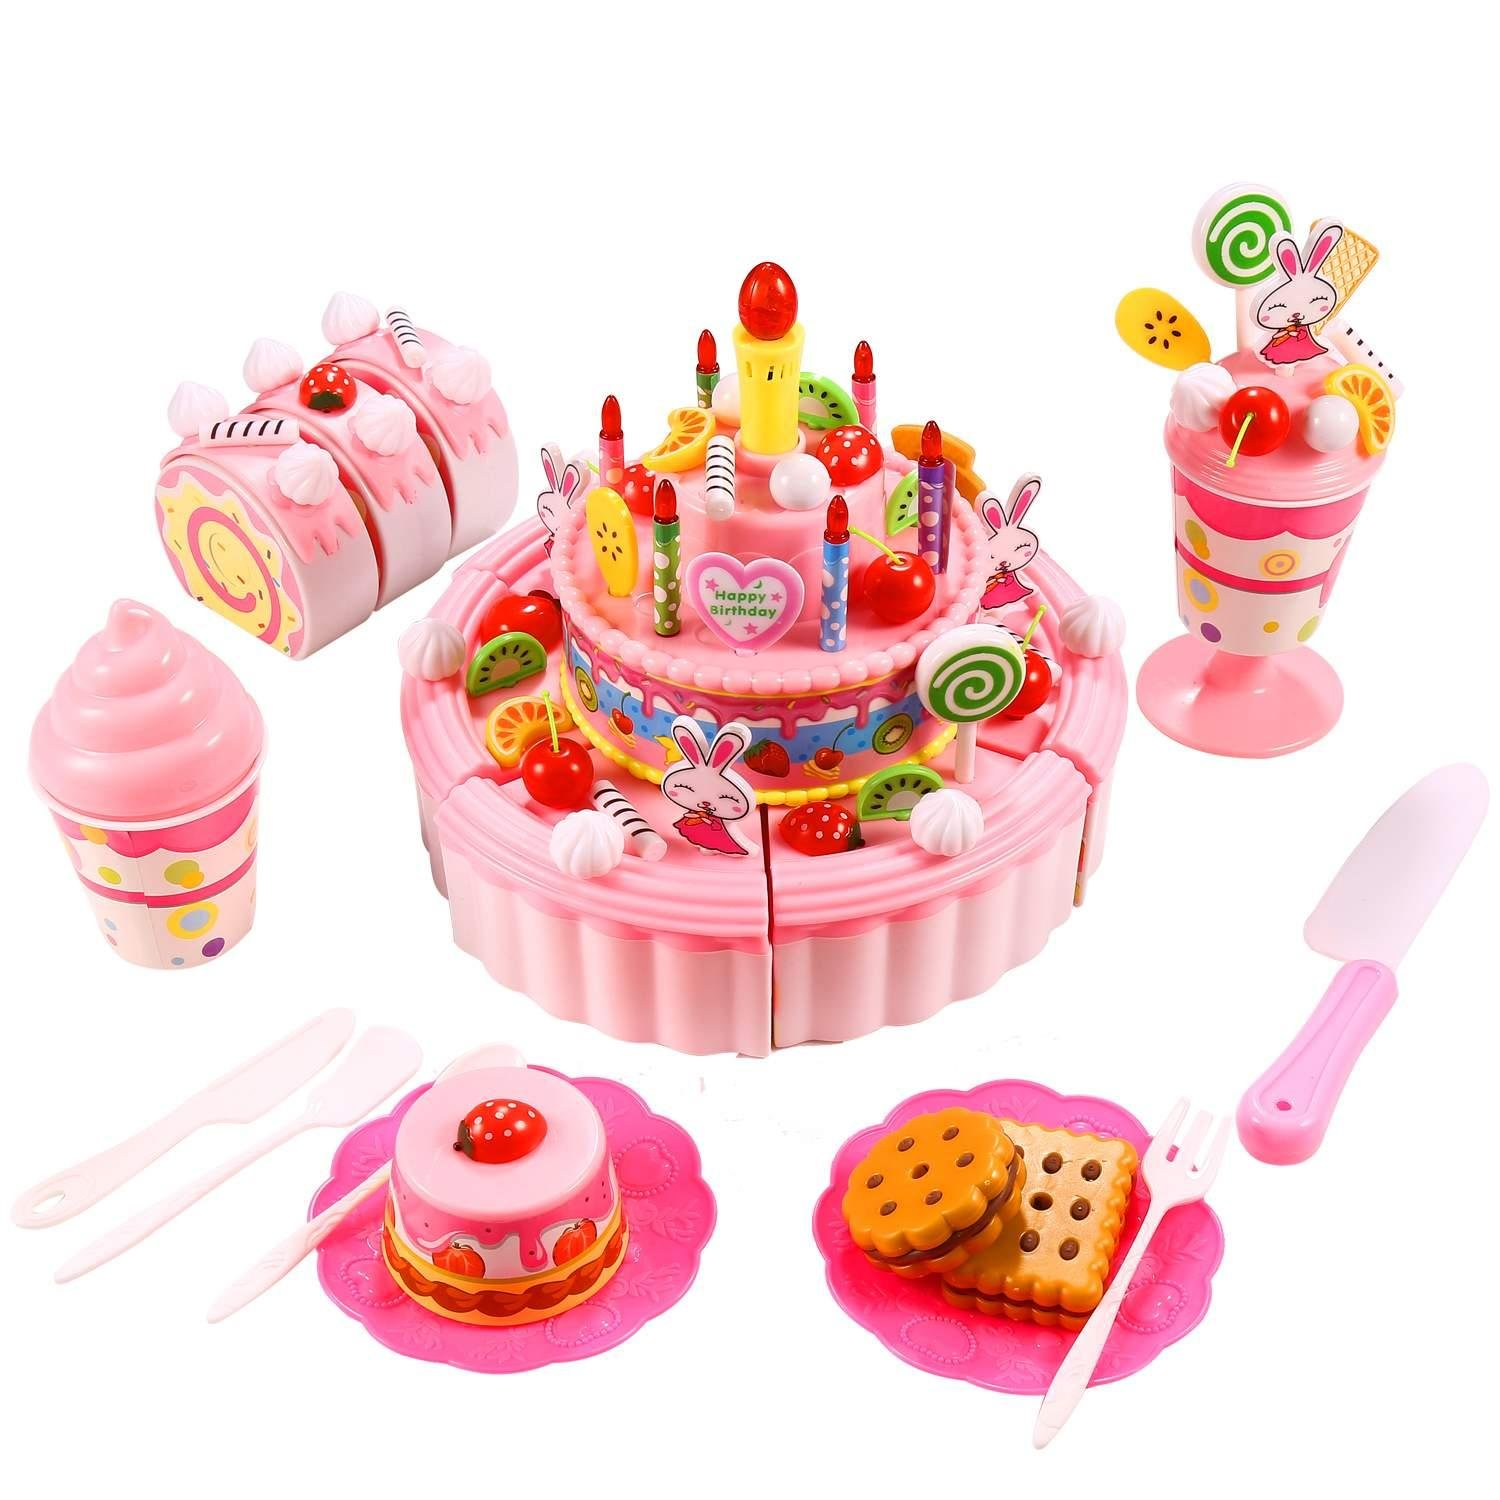 Amazon 33 Pcs Triple Layer Birthday Fruits Cake Toys Pretend Play Food Set With Music For Children Kids Above 3 Years Old Blue Games